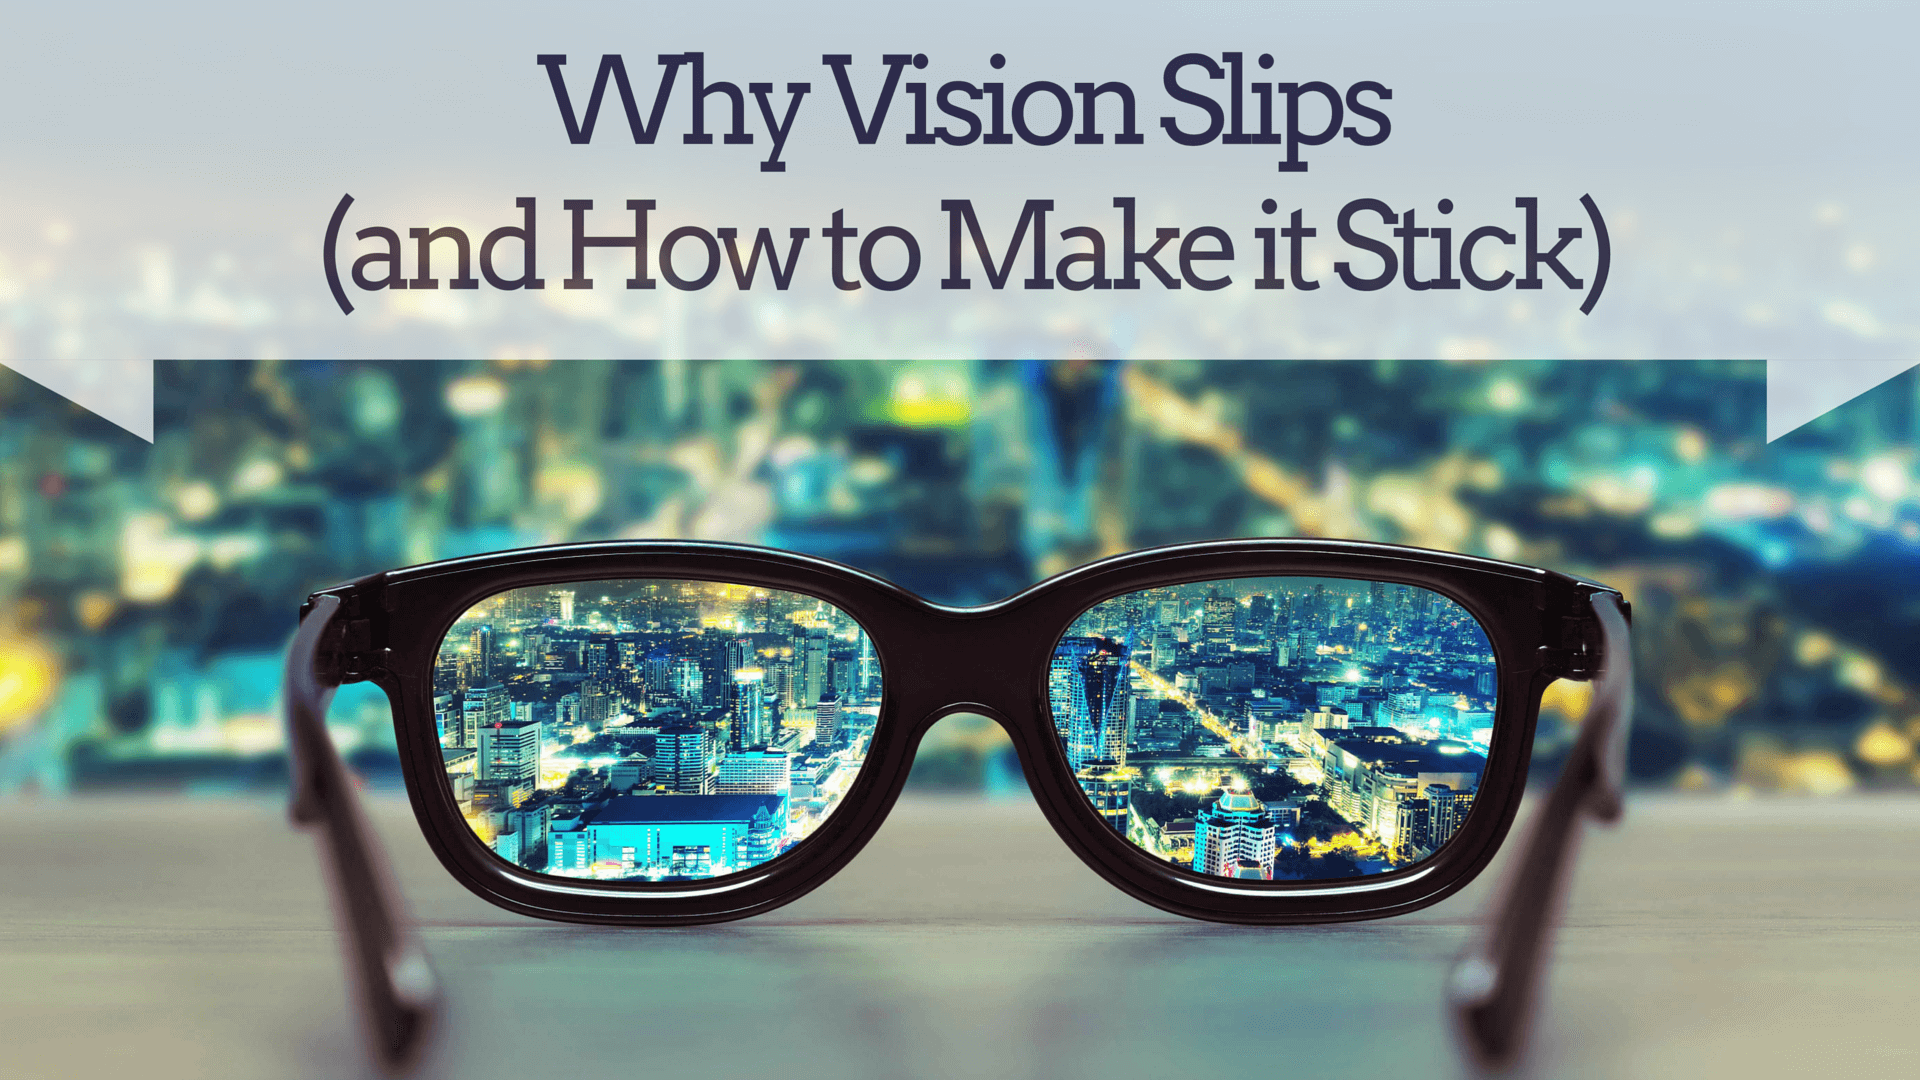 Why Vision Slips (and How to Make It Stick)